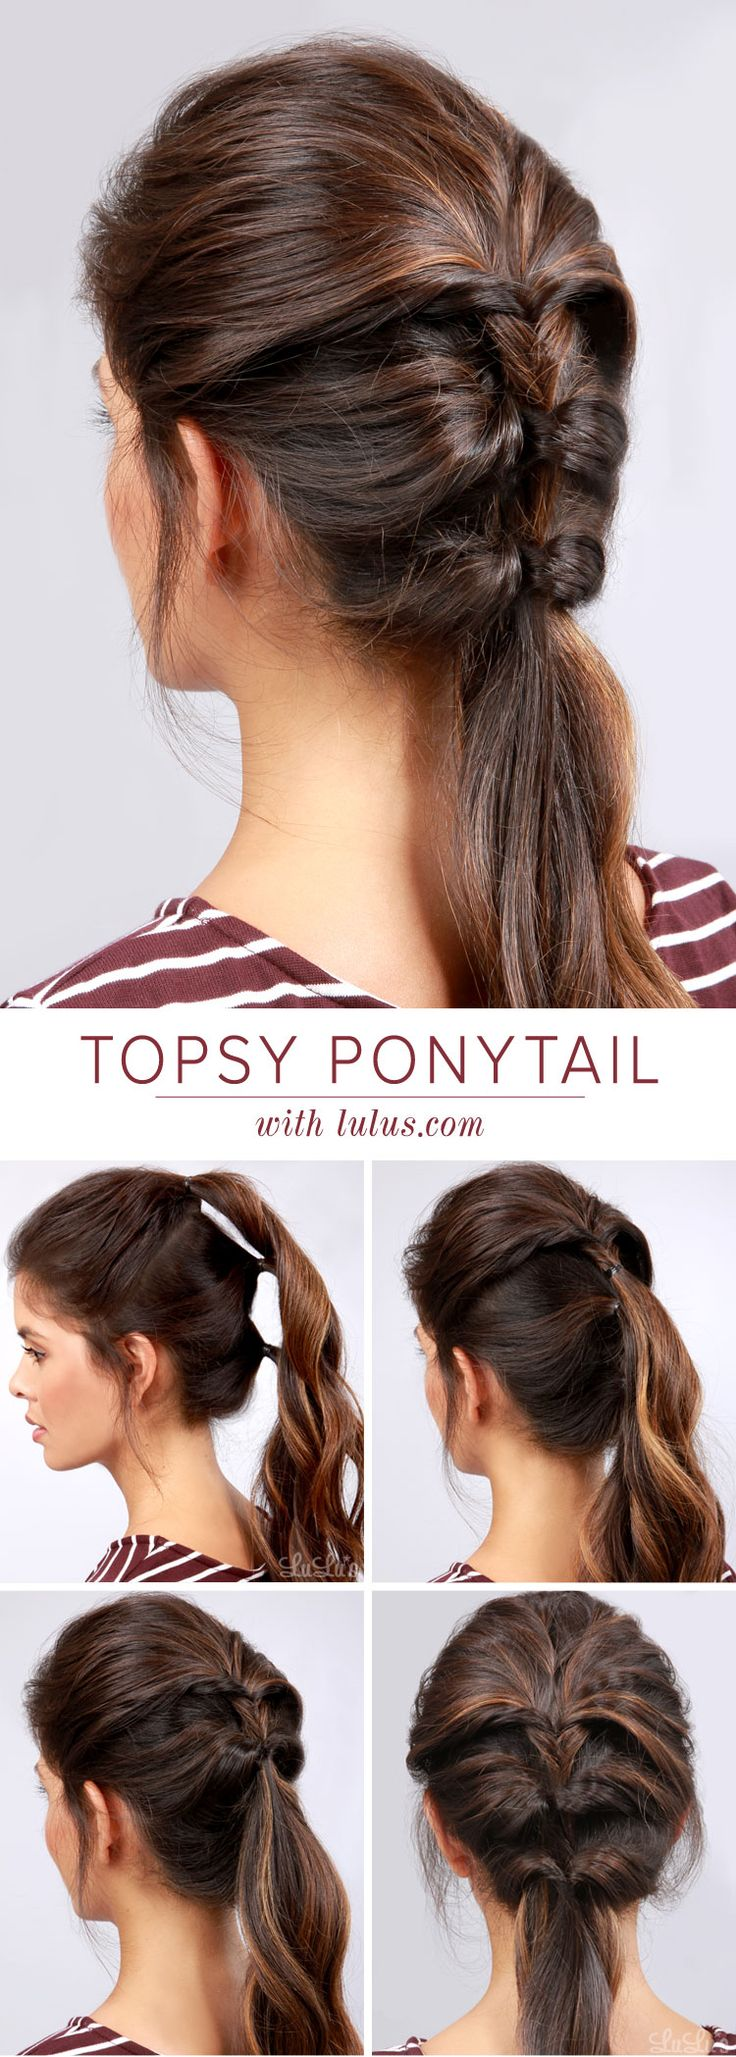 DIY Topsy Ponytail Hair Tutorial